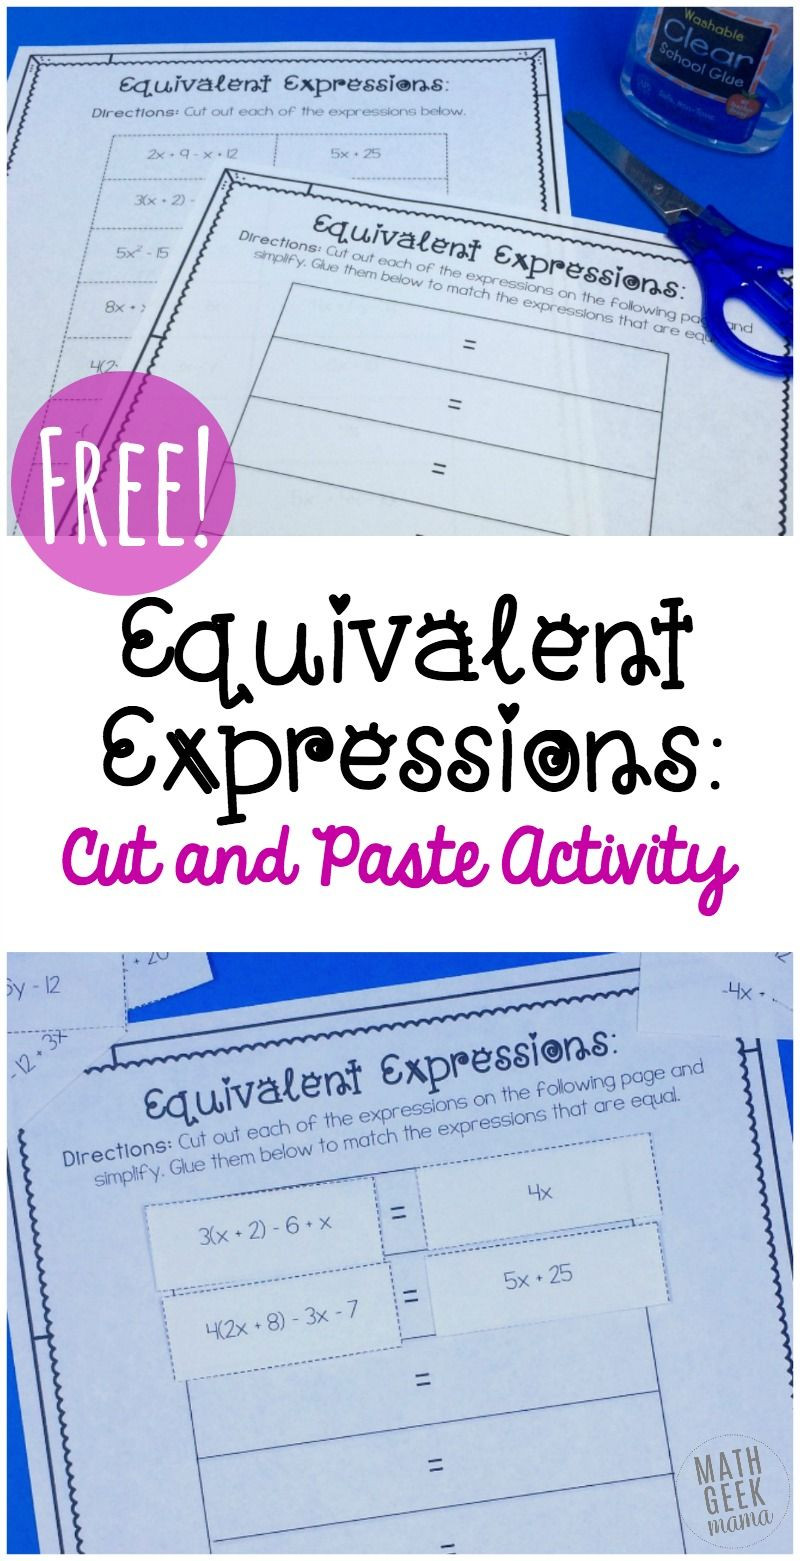 Equivalent Expressions Worksheet 7th Grade Simple Equivalent Expressions Activity Free